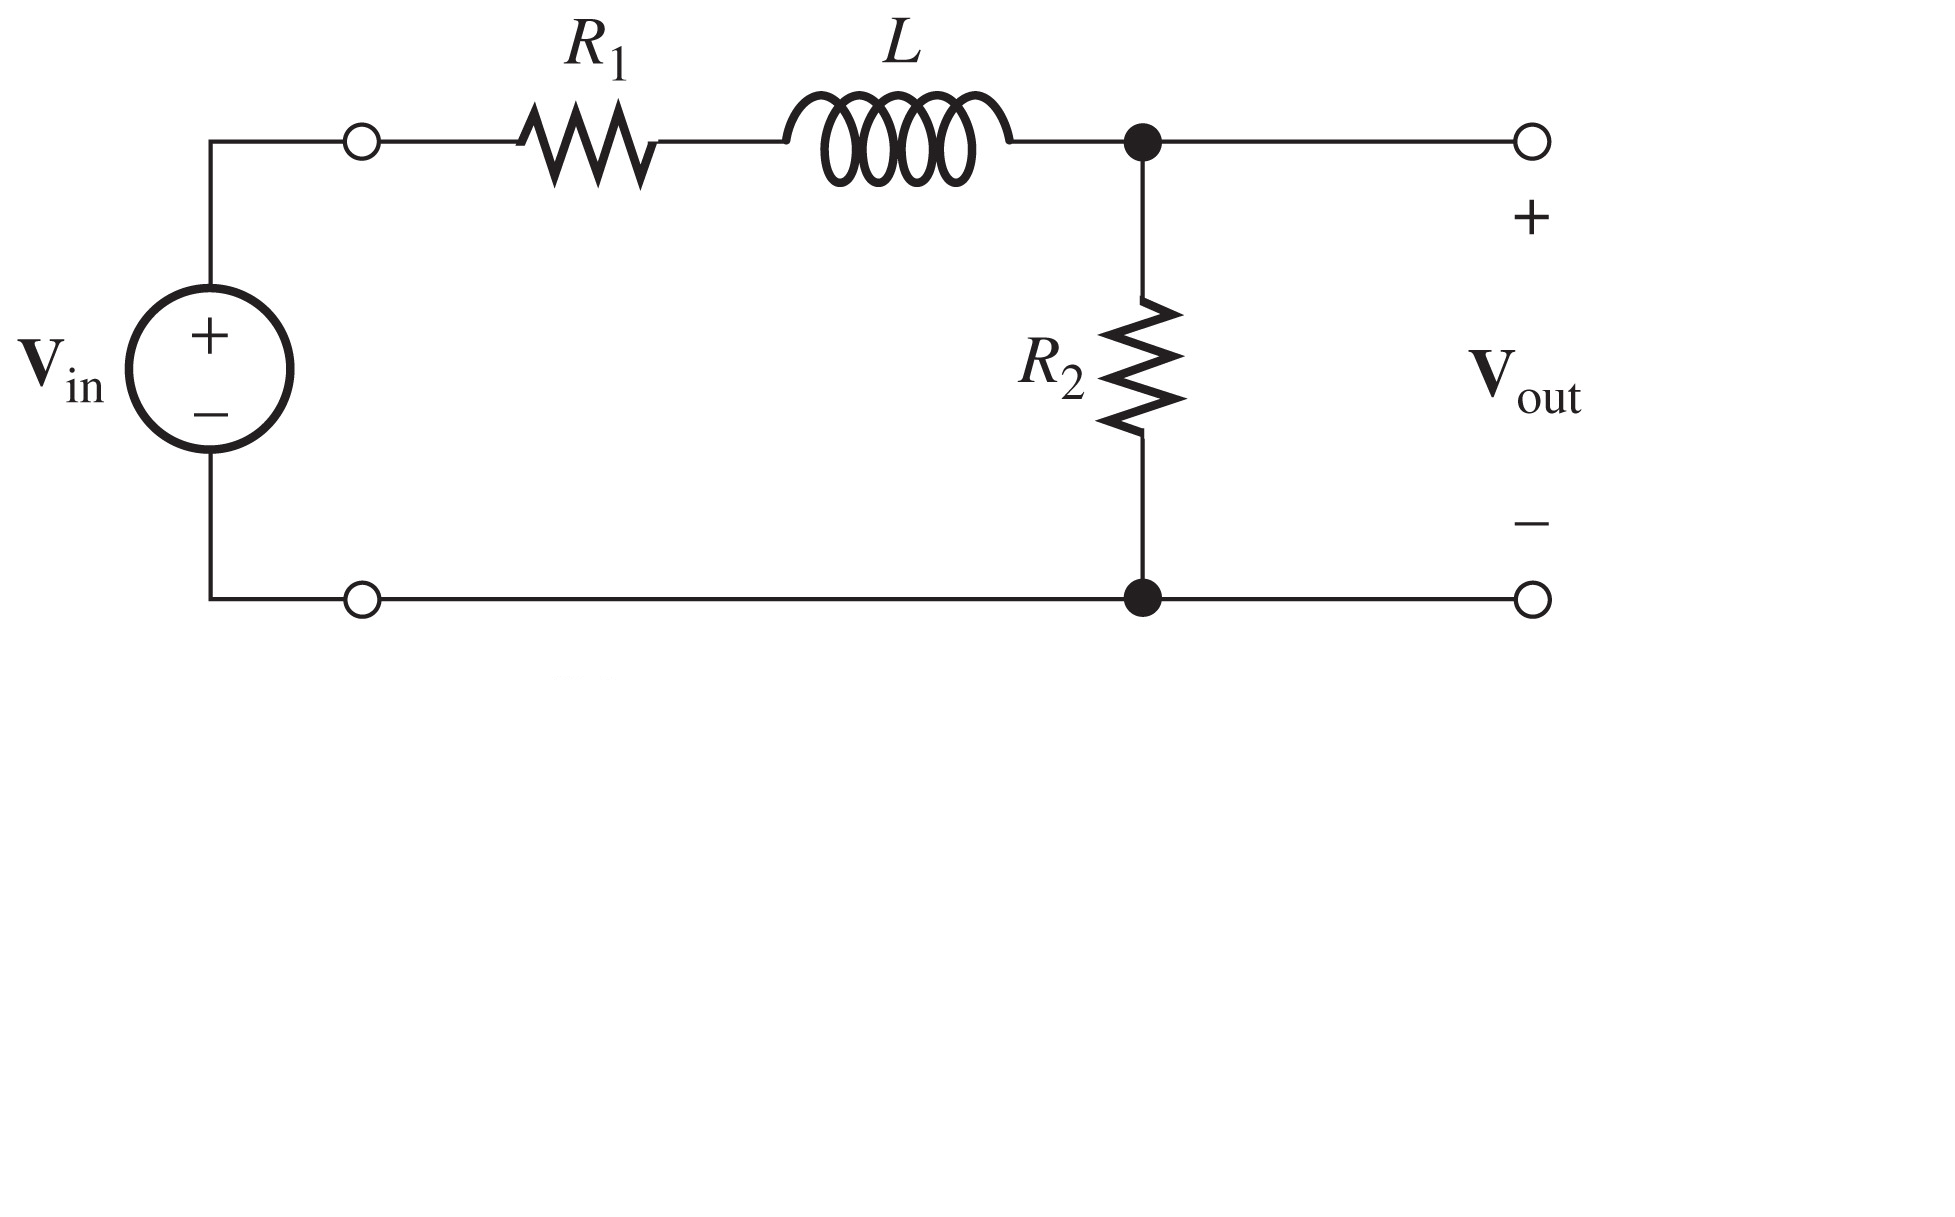 Determine the voltage Vout for the circuit shown